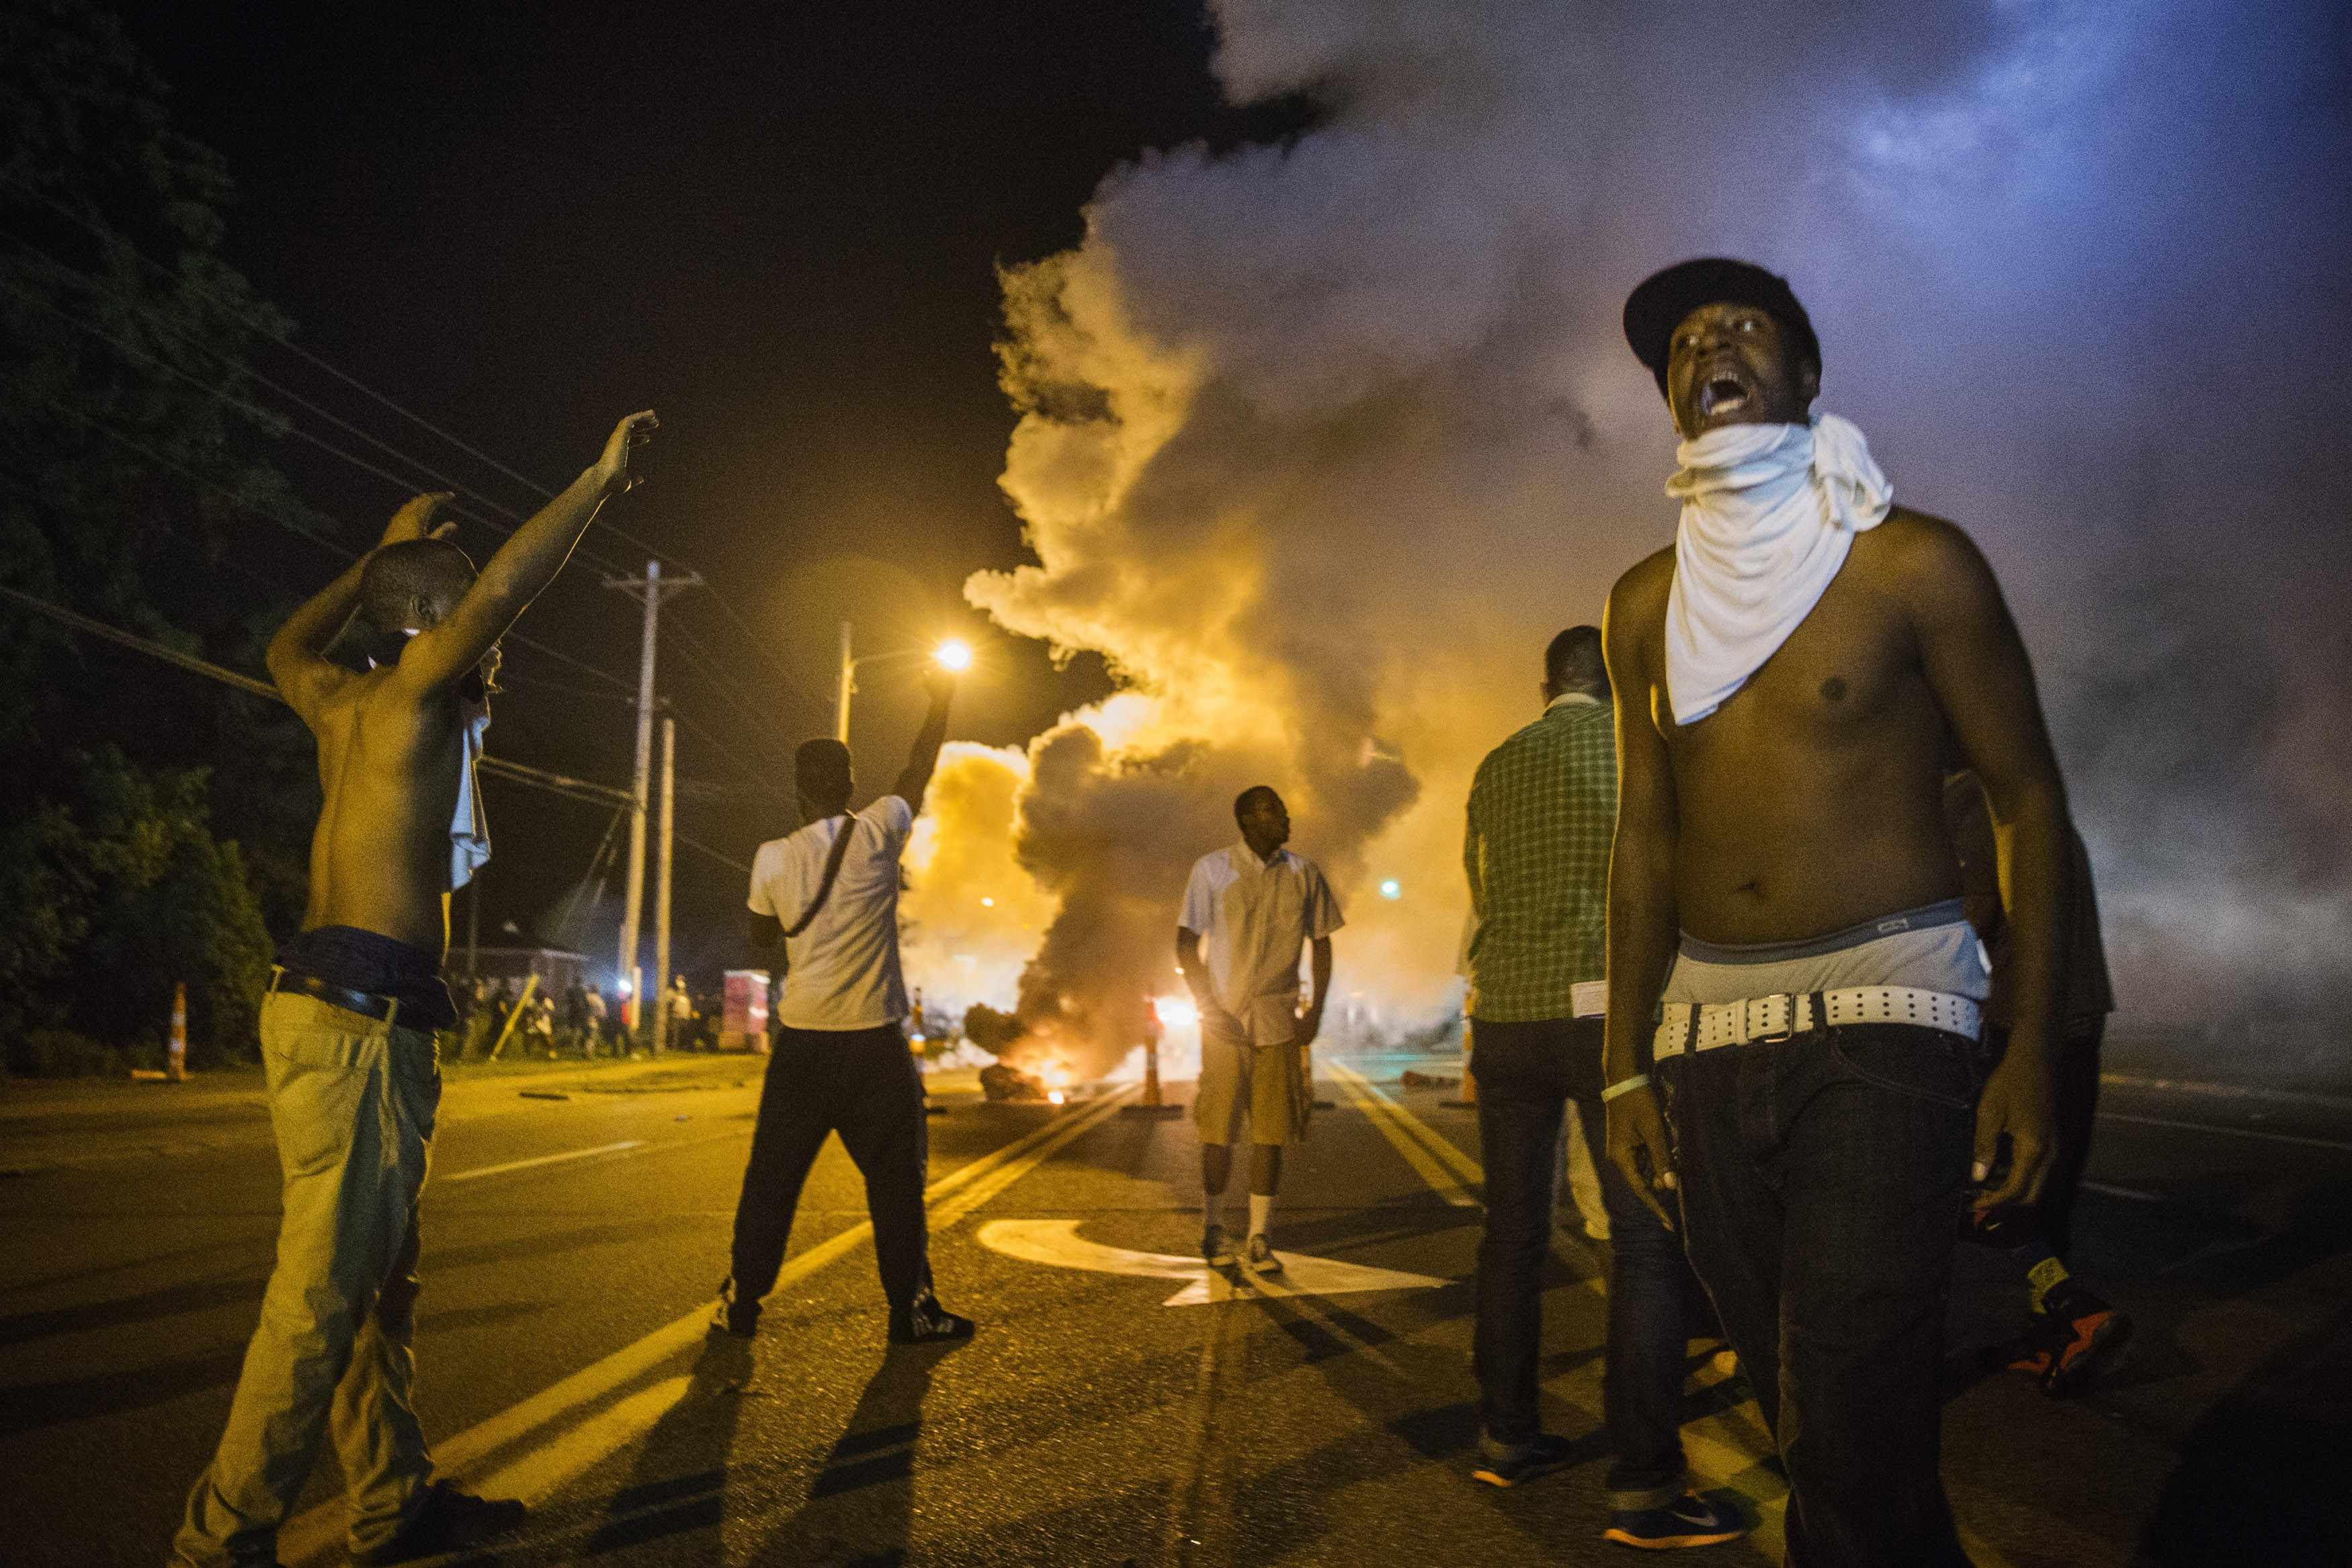 Demonstrators in Ferguson react to tear gas fired by police on Aug. 18 during protests over the fatal shooting of teenager Michael Brown. (REUTERS/Lucas Jackson)